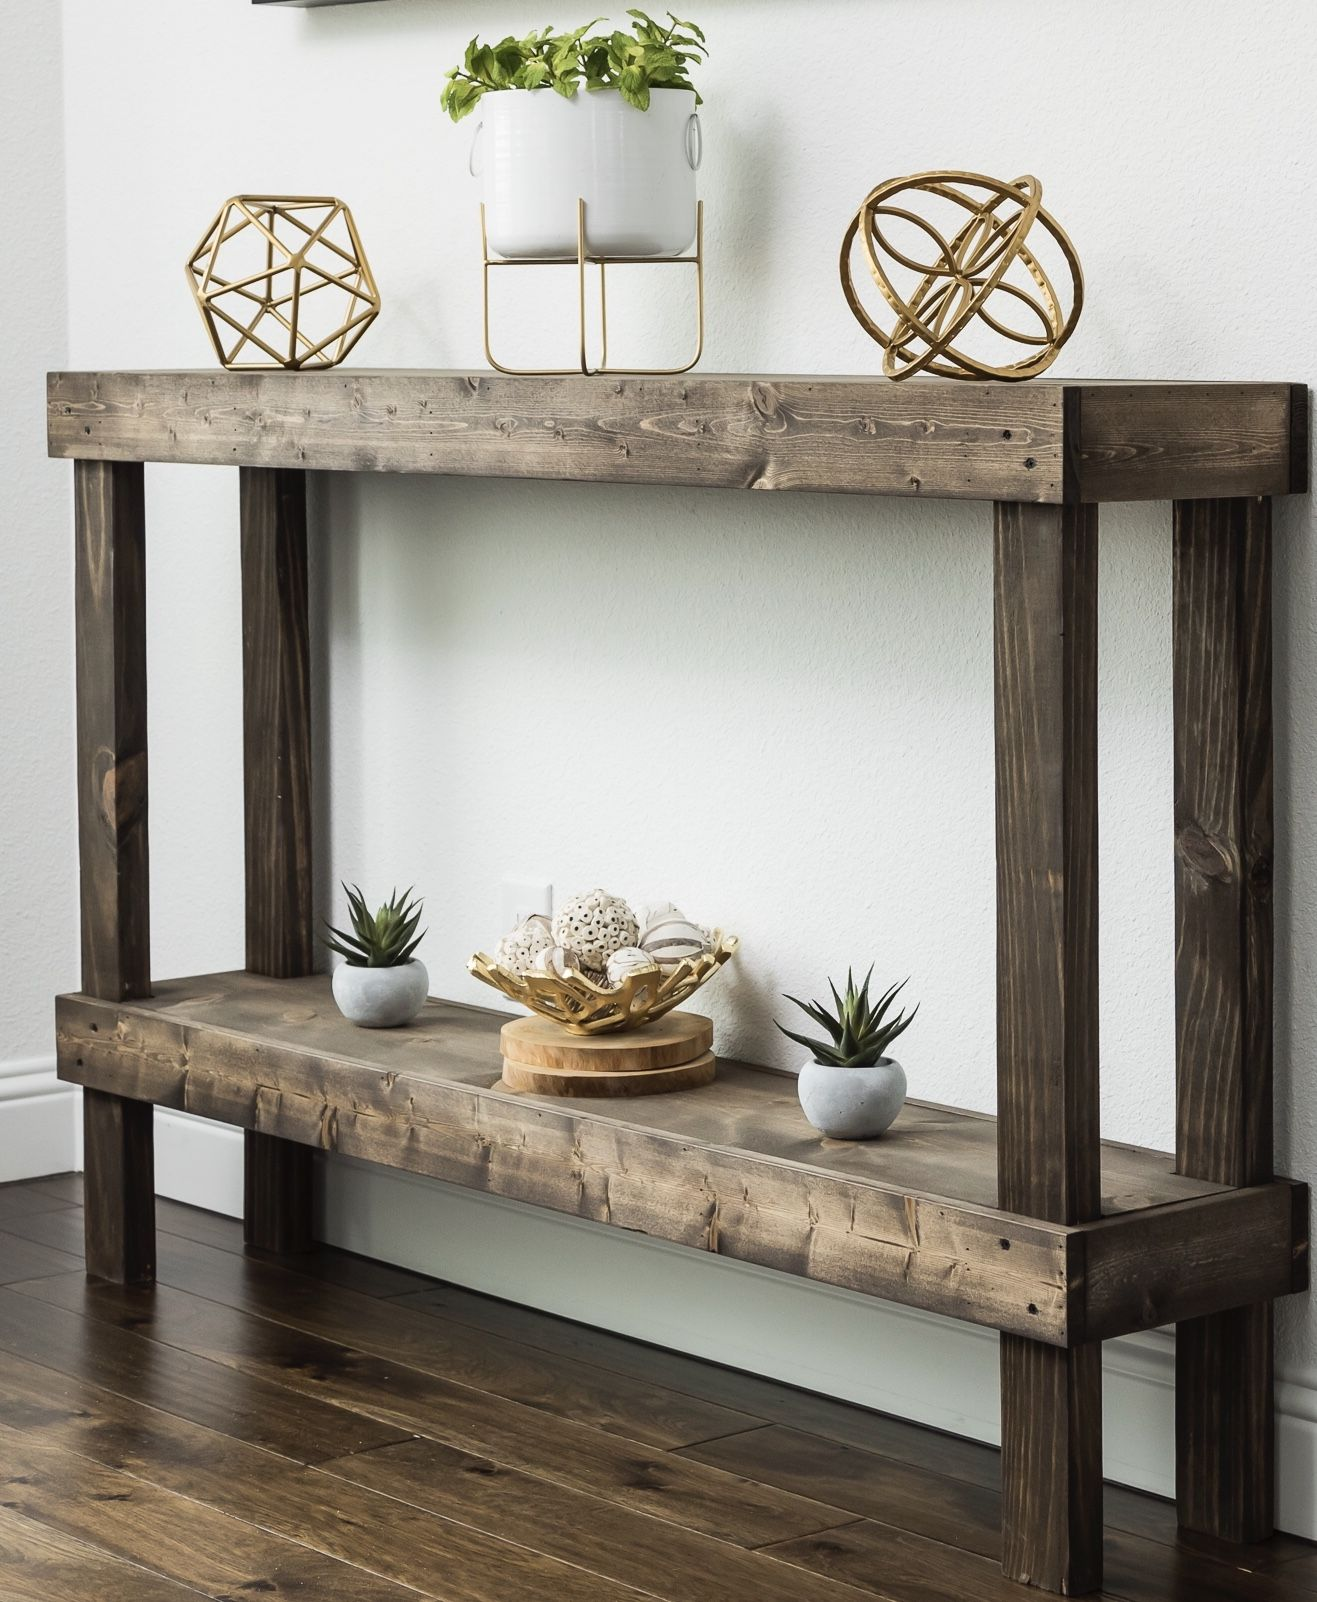 Woven Paths Dark Walnut Large Rustic Luxe Wooden Sofa Table Walmart Com In 2021 Rustic Console Tables Sofa Table Decor Wood Console Table